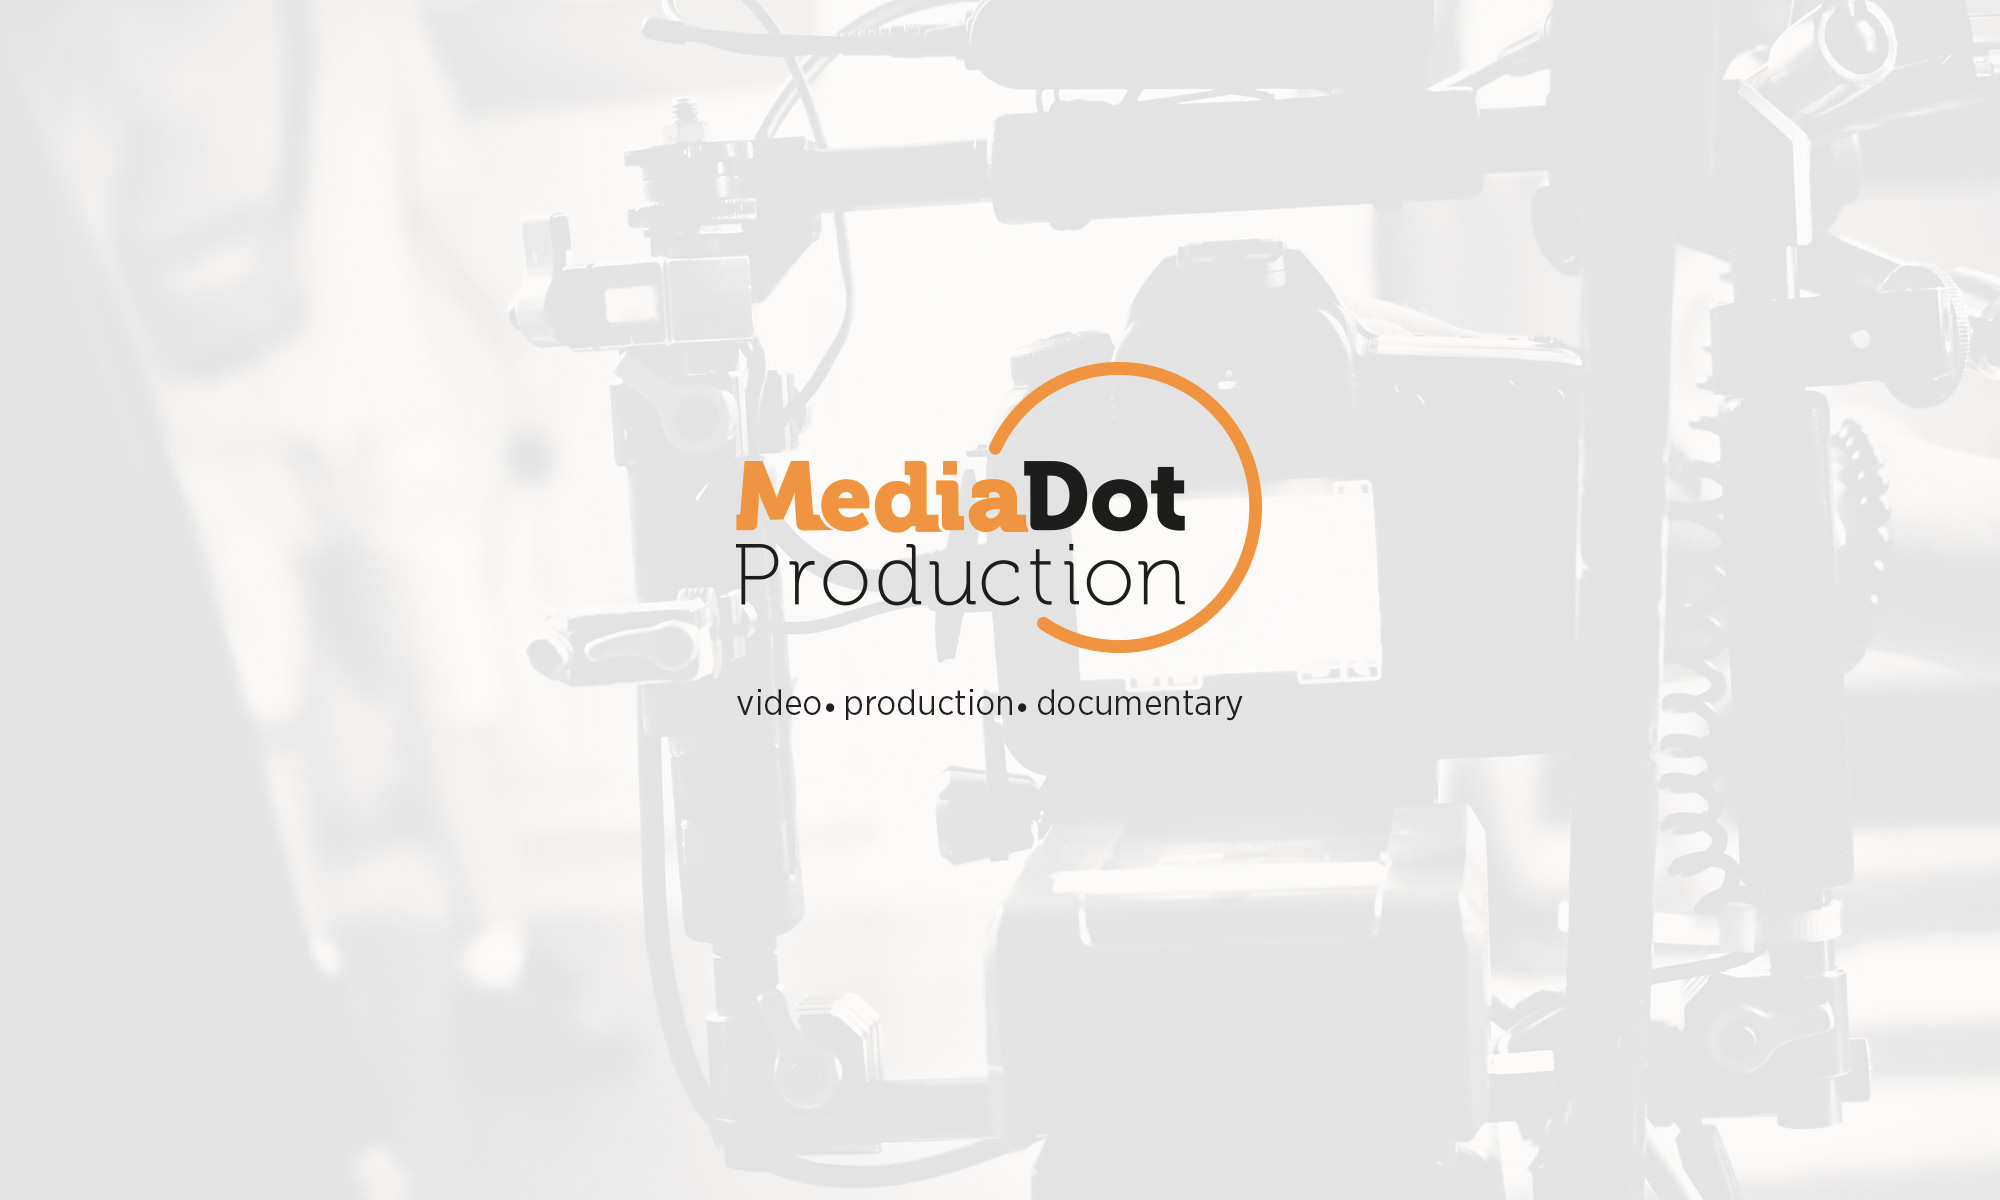 MediaDot Production